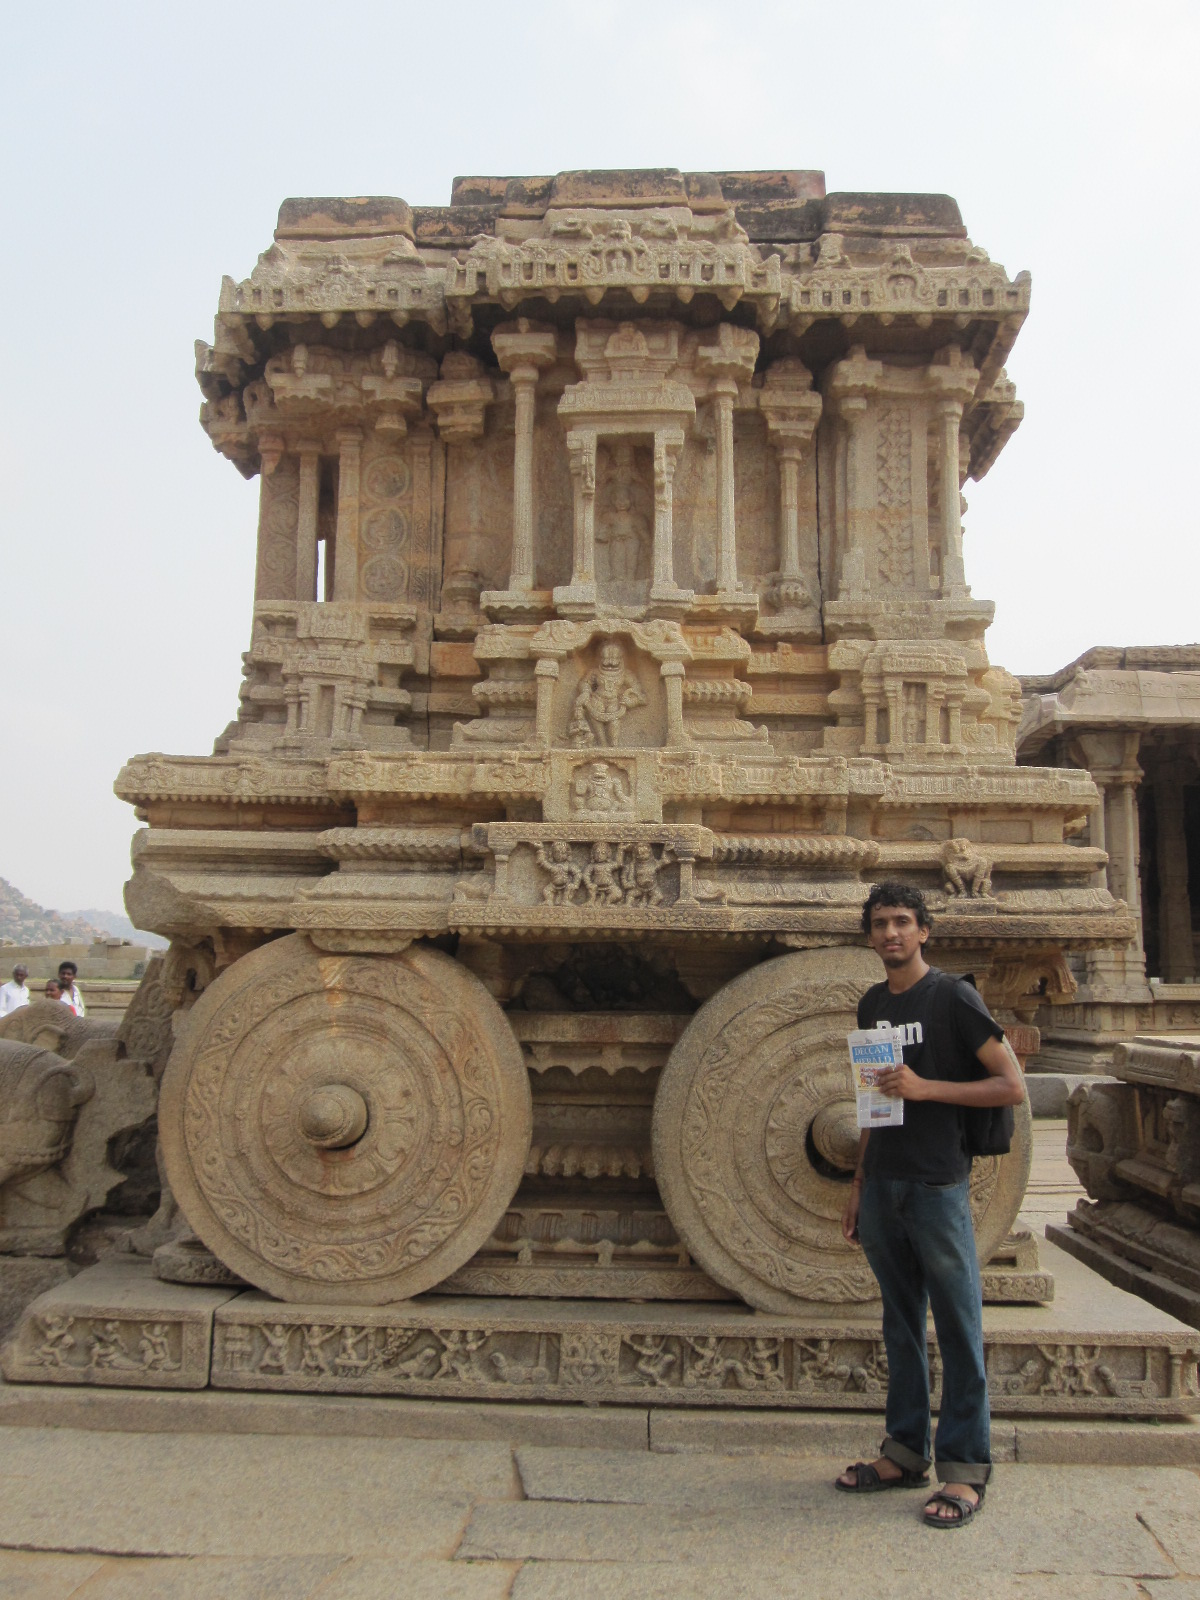 Stone Chariot. I've dreamt a lot of visiting this place! Challenge completed!